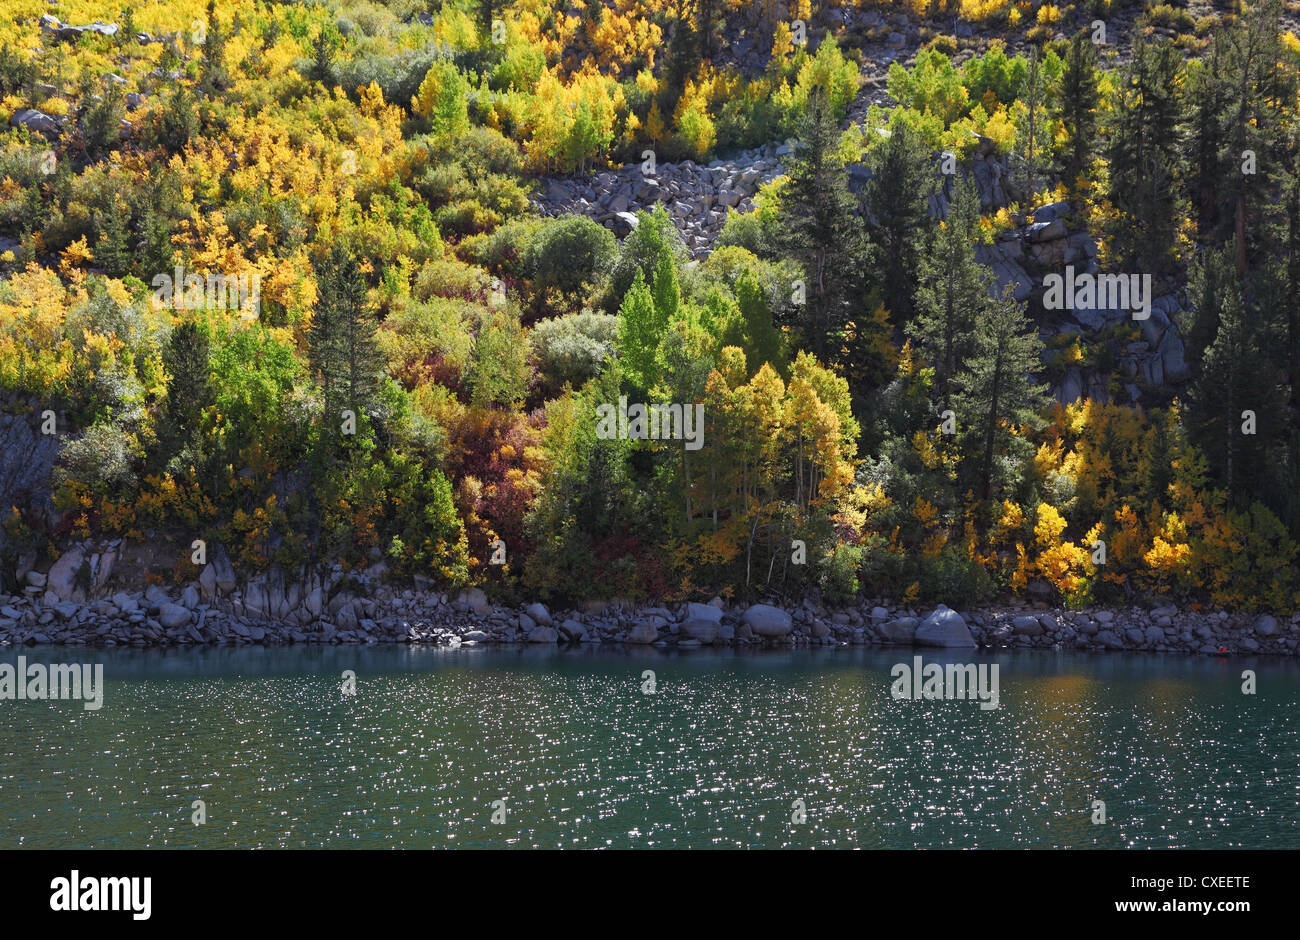 The yellow foliage shines  of midday sun - Stock Image